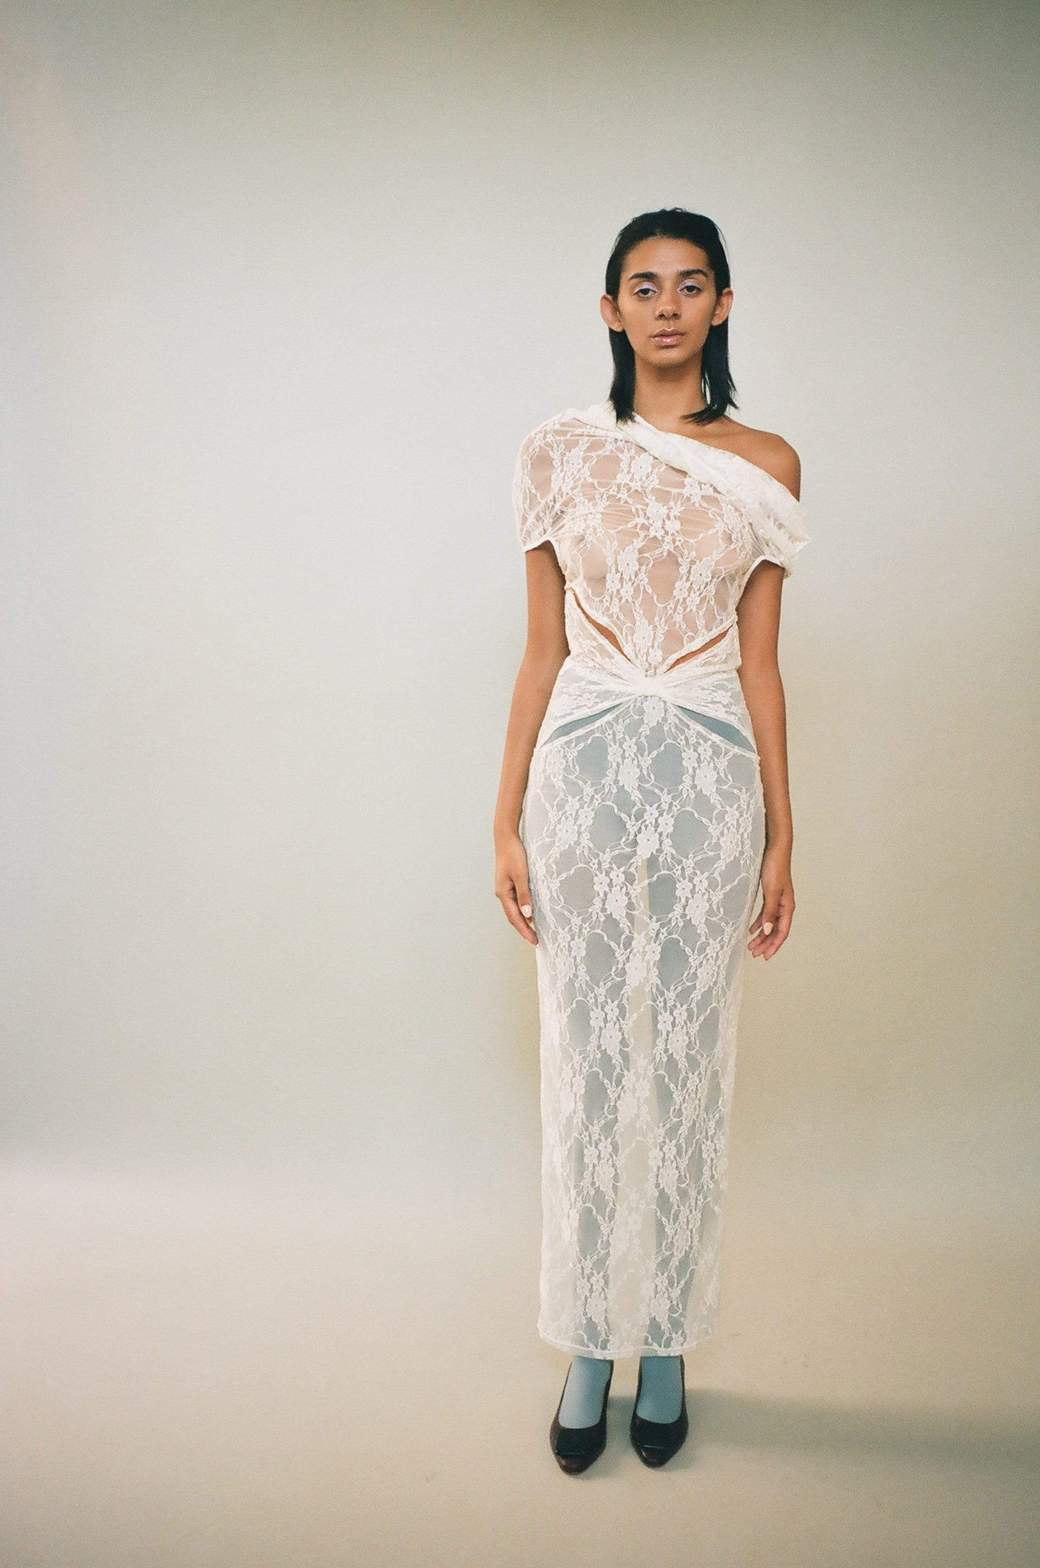 Amarre Dress by Barragan, available on maimounstore.com for $439 Kim Kardashian Dress Exact Product